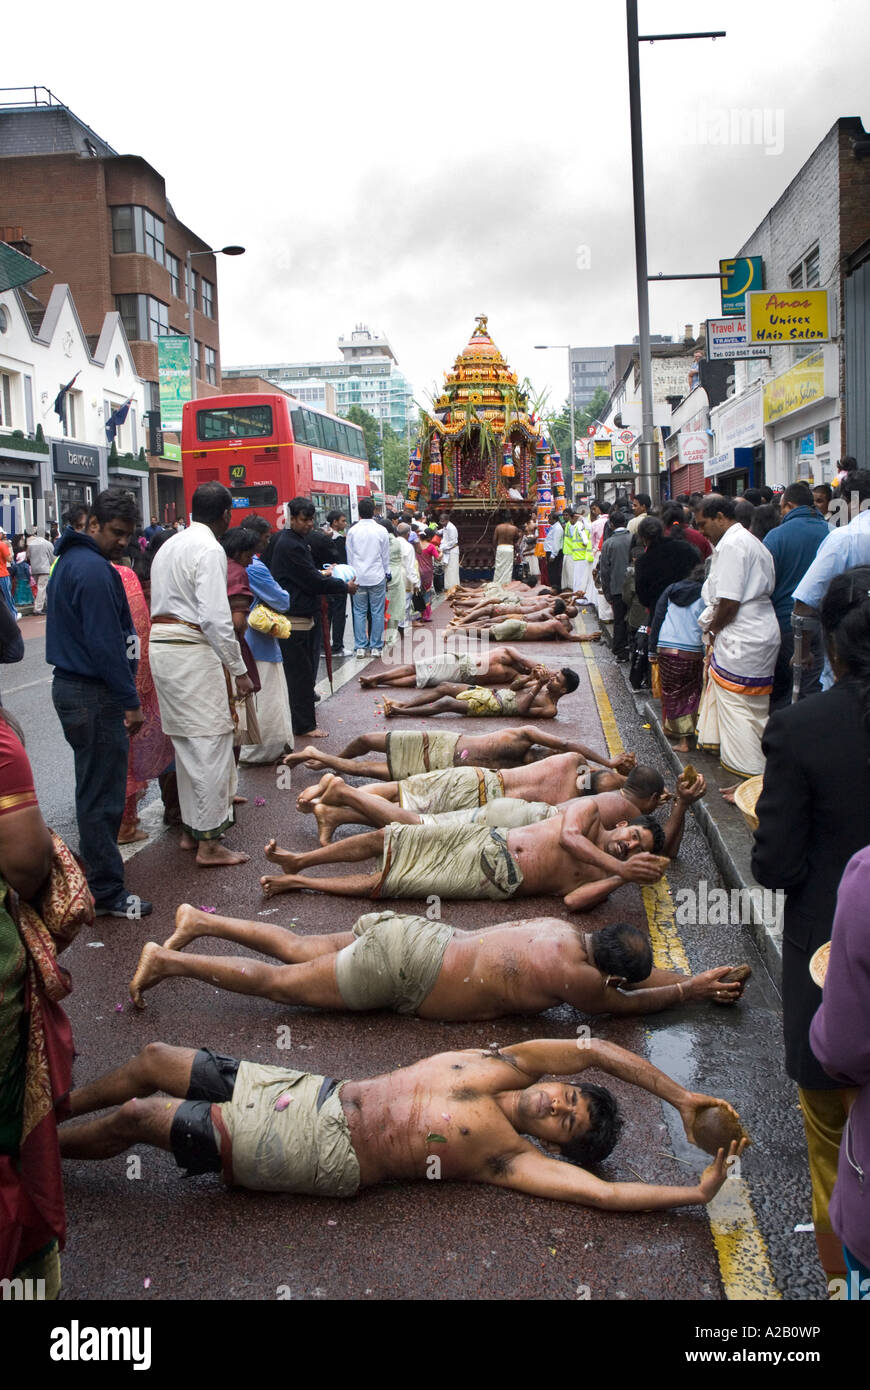 Men from Sri Kanaga Thurkai Amman Temple performing Piralheddai the annual Chariot Festival West Ealing London - Stock Image